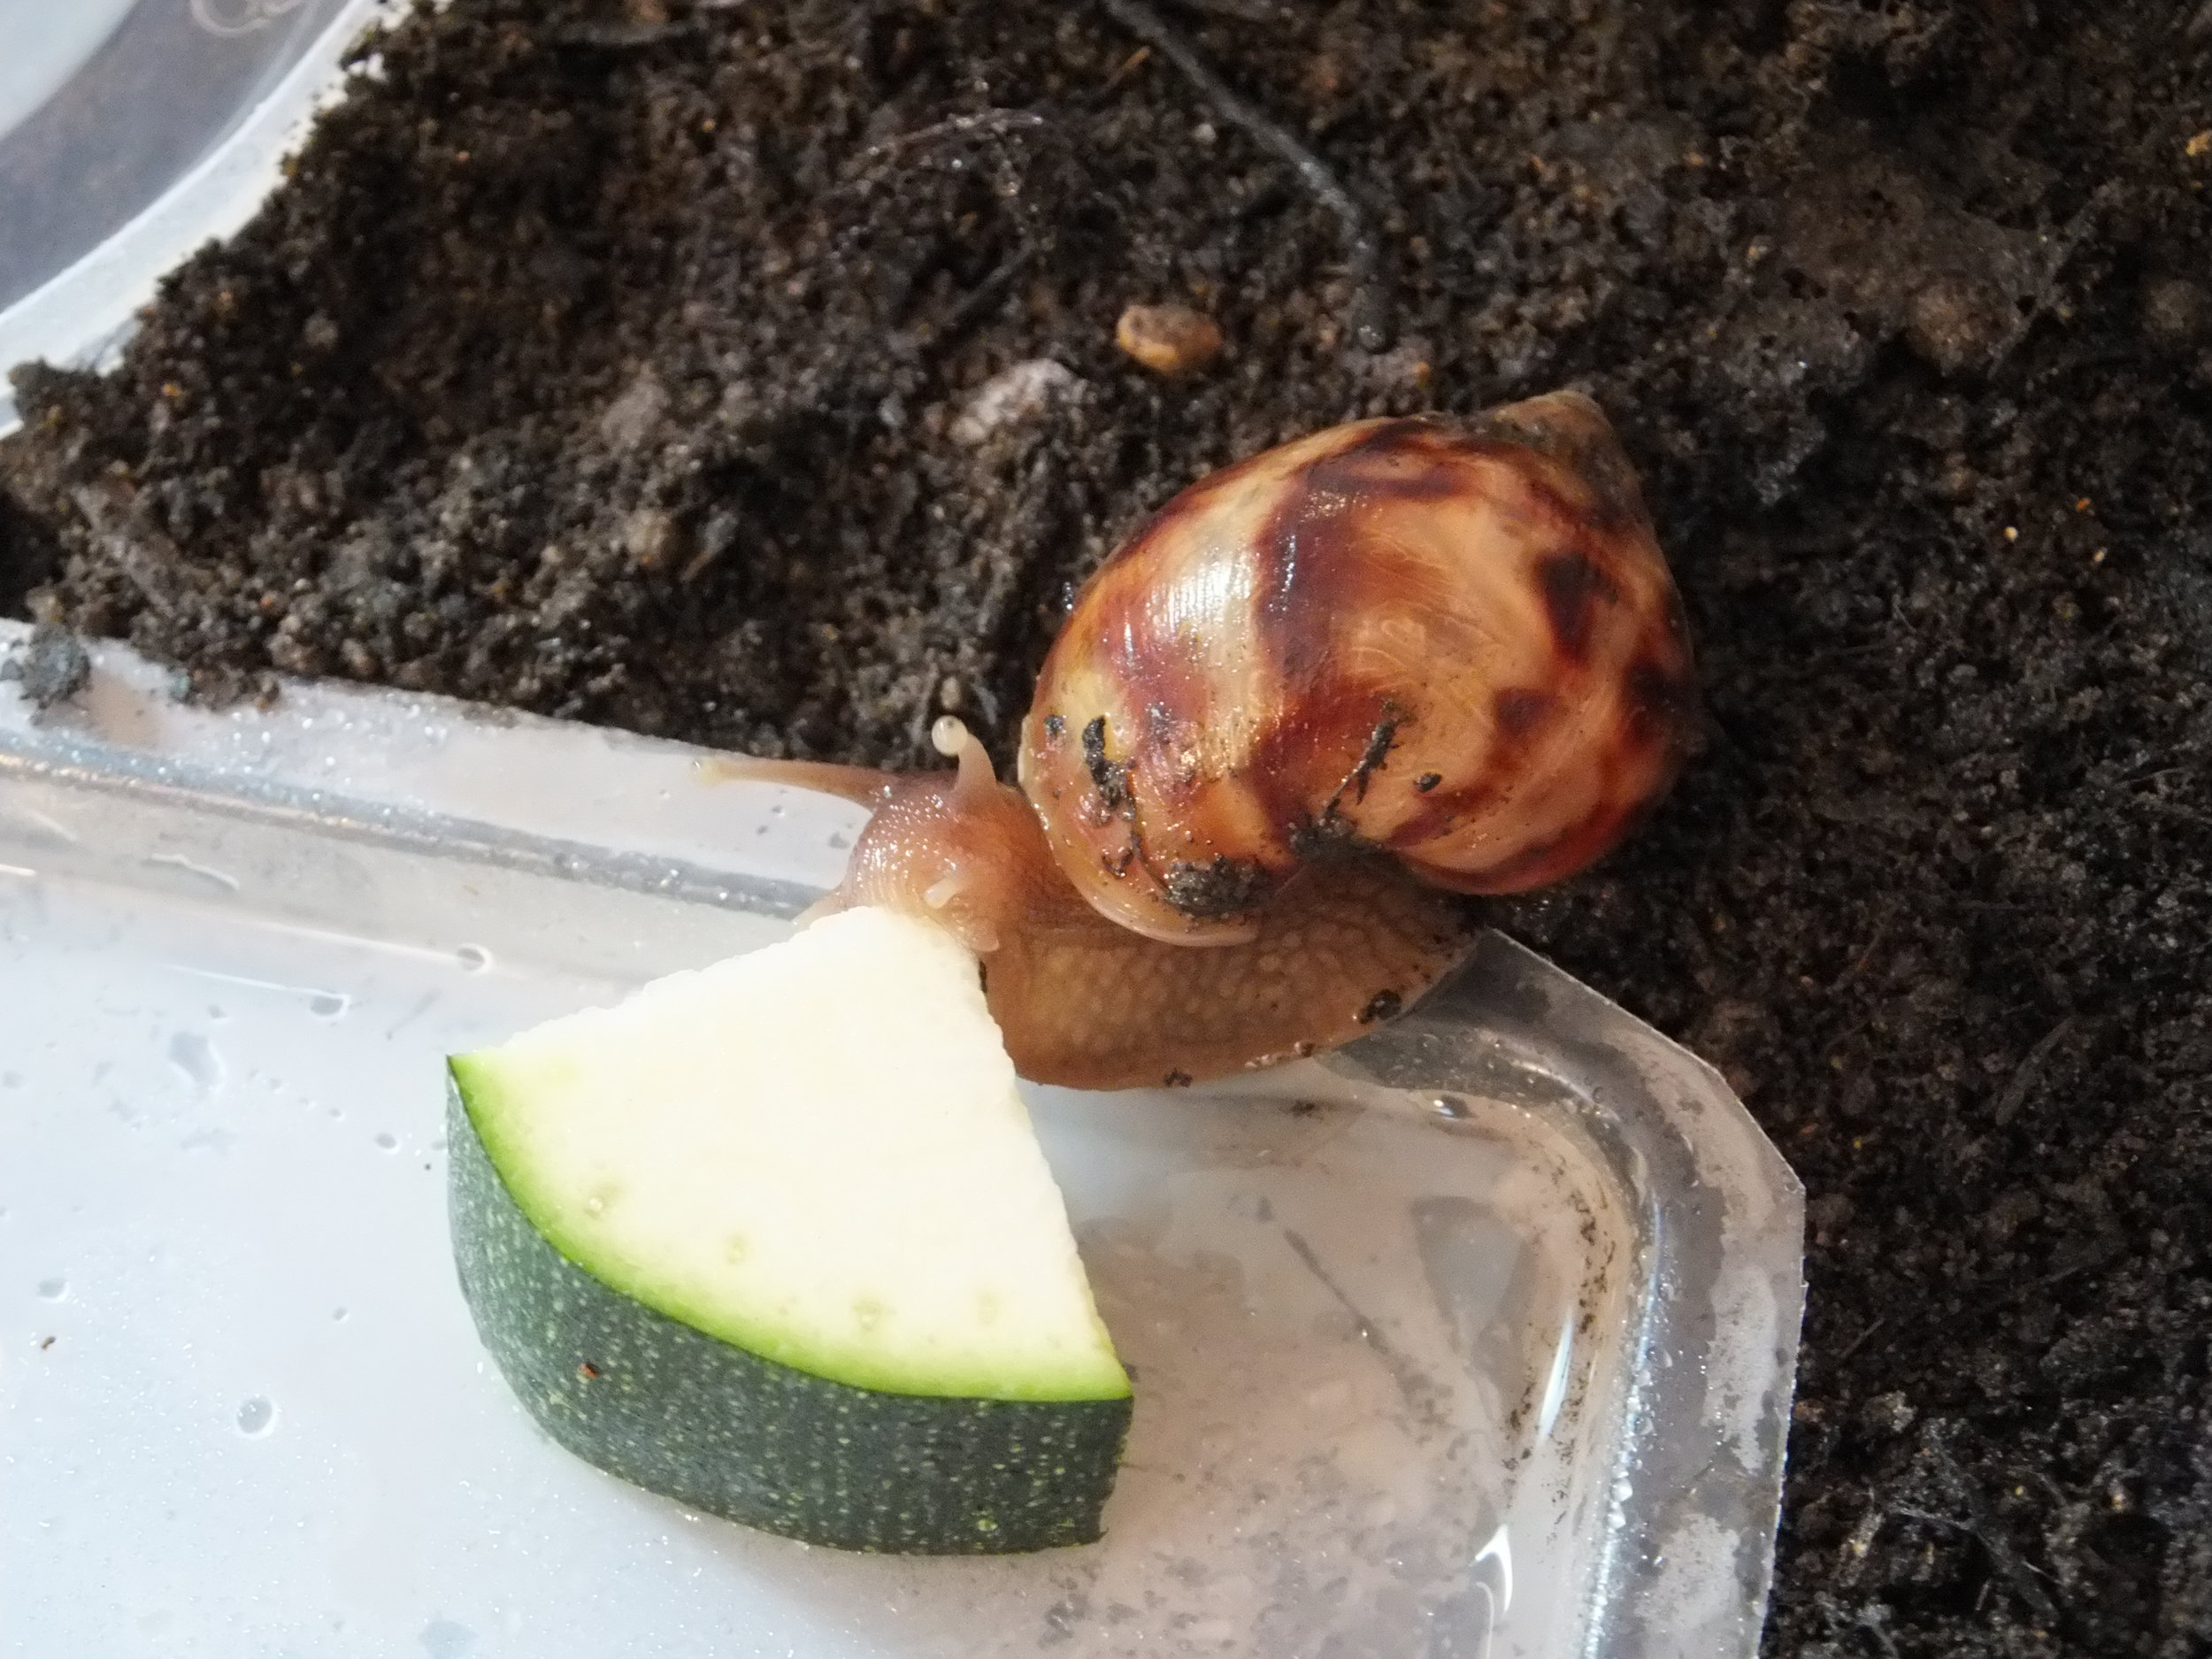 A GALS enjoying a piece of courgette.